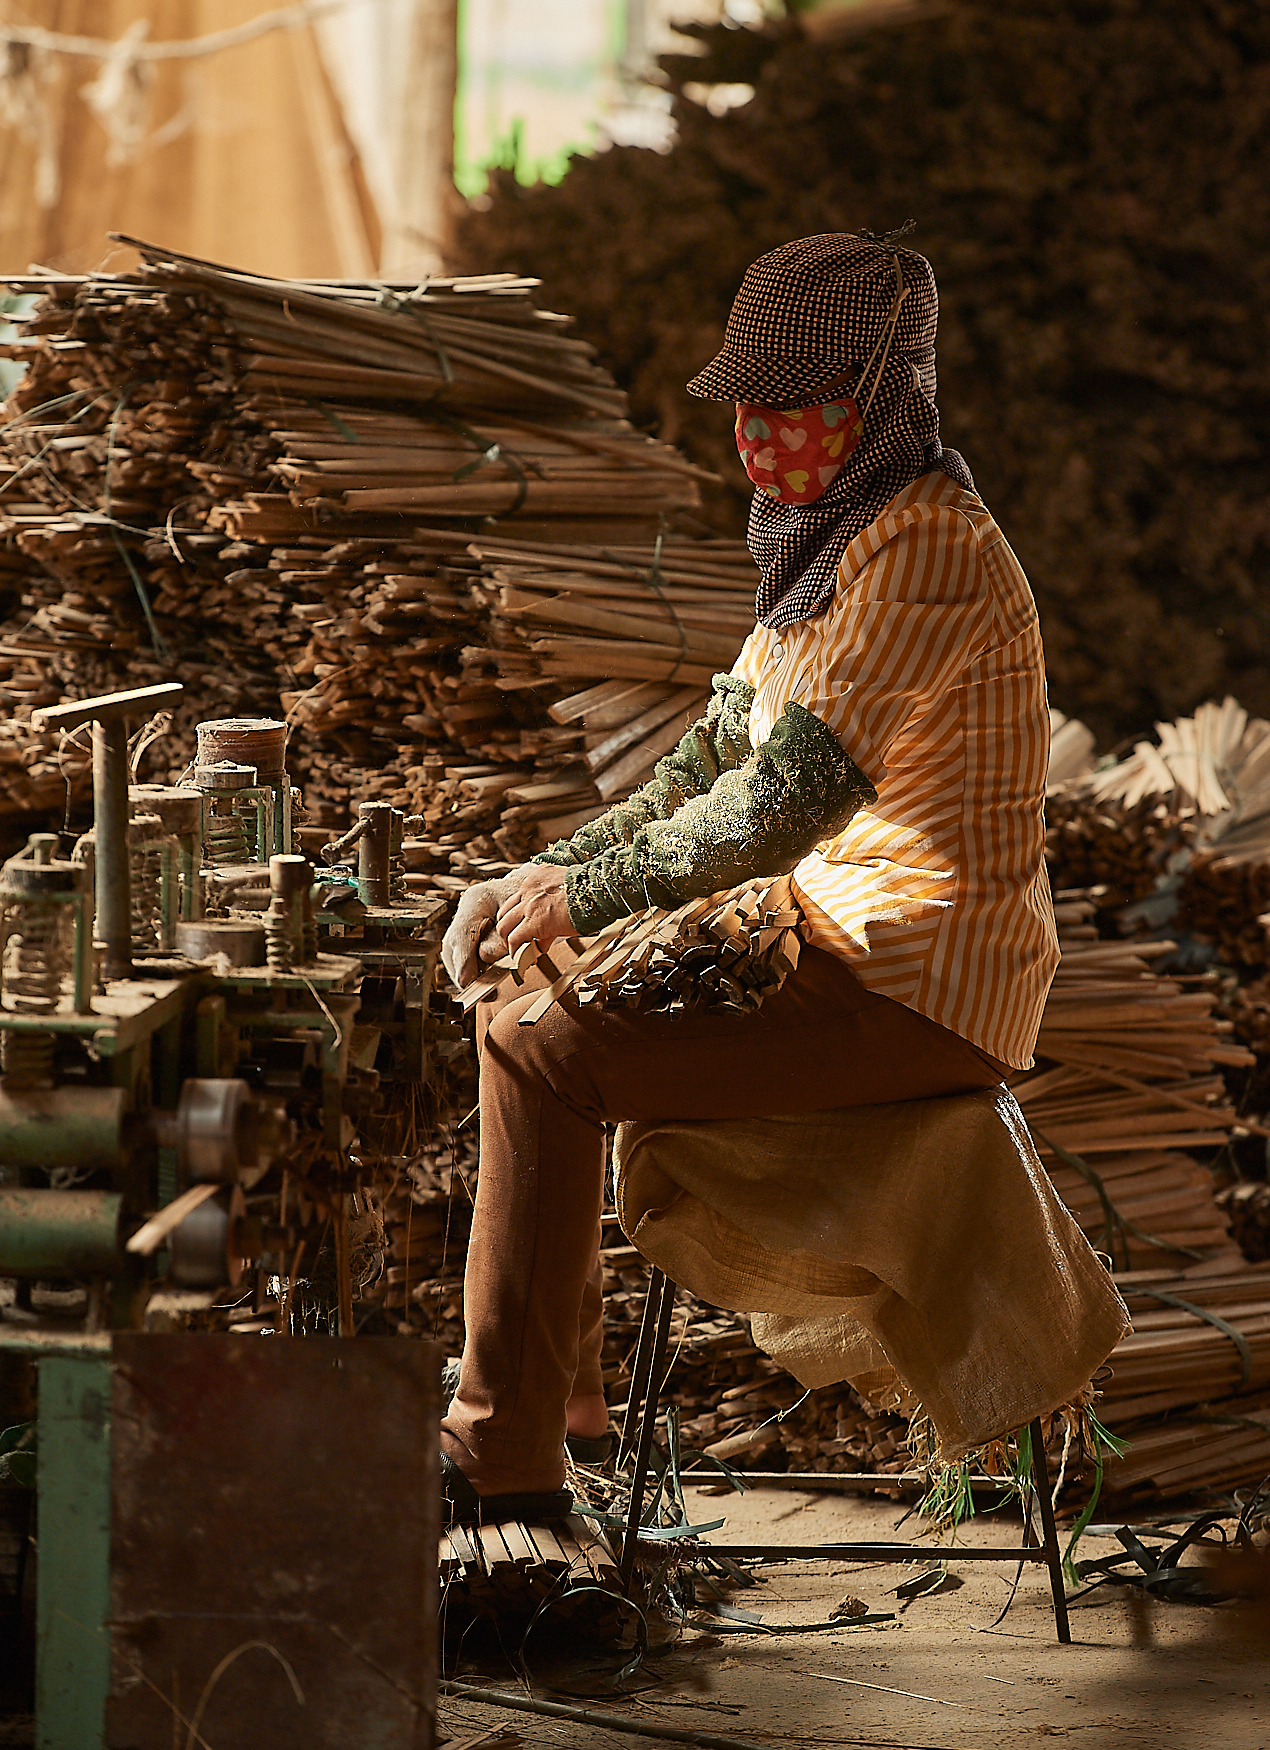 Sticks are being fed through the machine until they are smoothed out and in the appropriate dimensions.  In the process, all excess material is discarded.